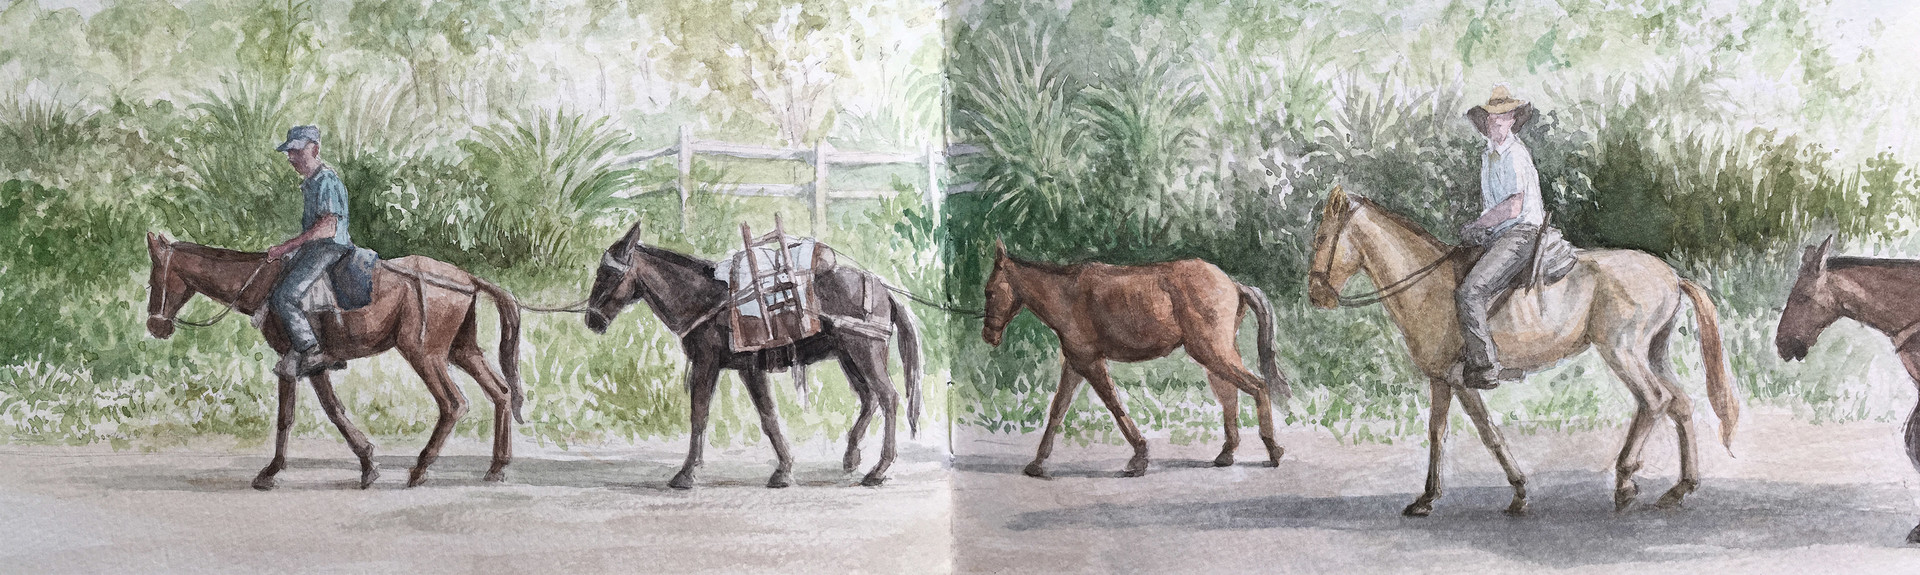 Robert baird colombian sketchbook on the rox to bolivar watercolour